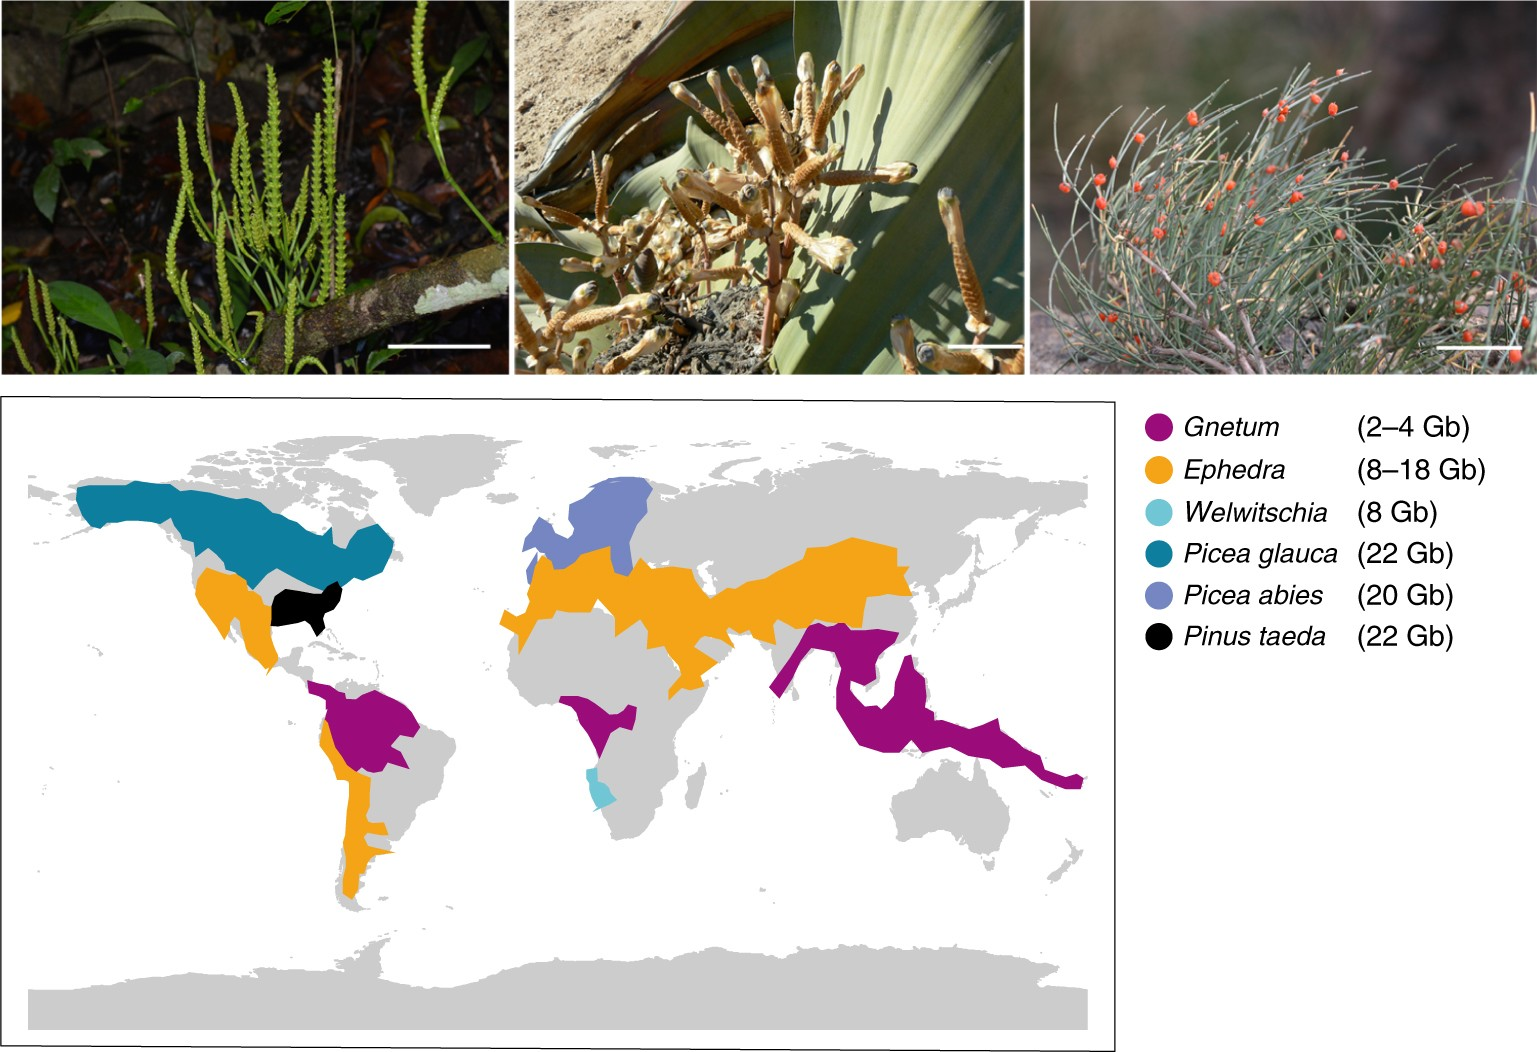 A genome for gnetophytes and early evolution of seed plants